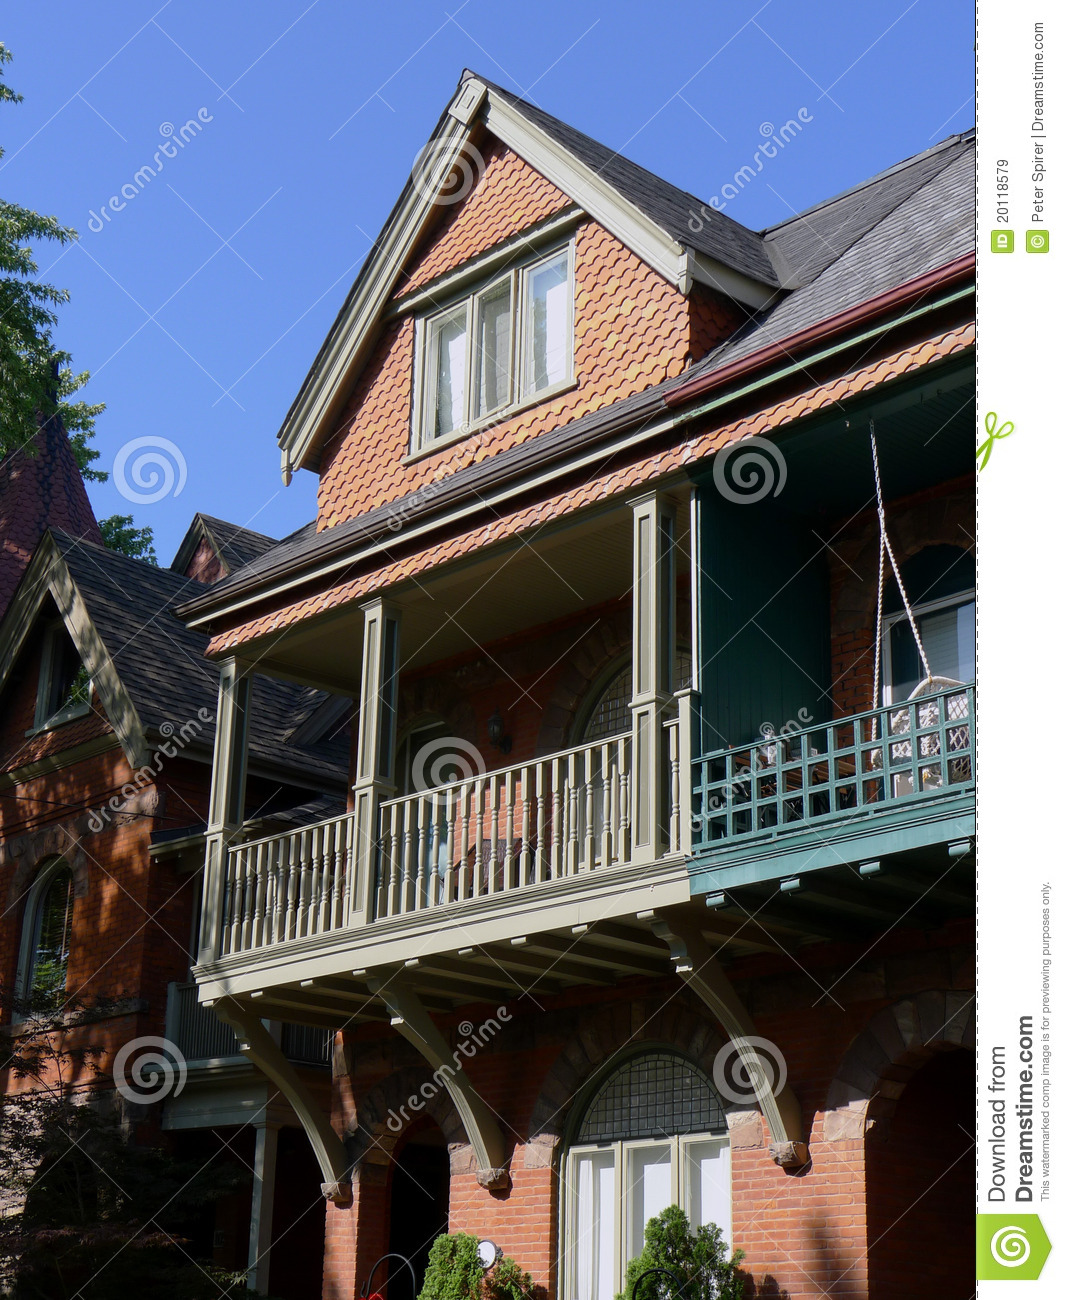 Victorian house with large balcony royalty free stock - Houses three balconies ...